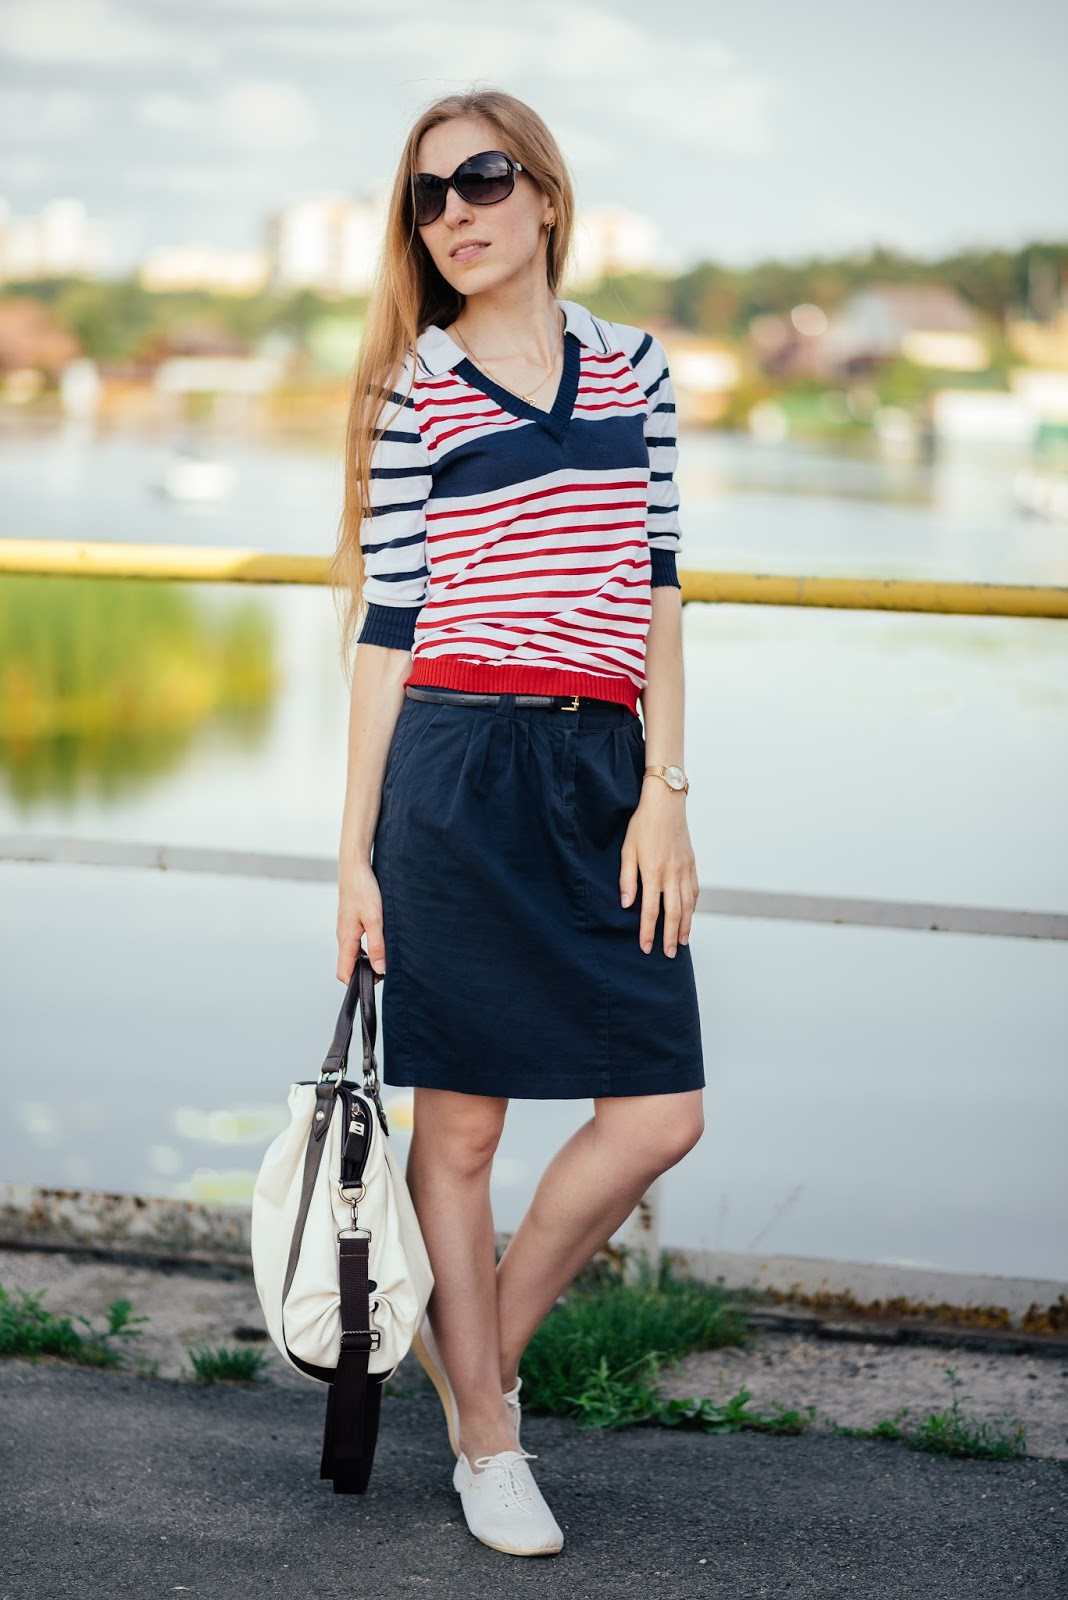 Polo shirt and skirt with pockets - style